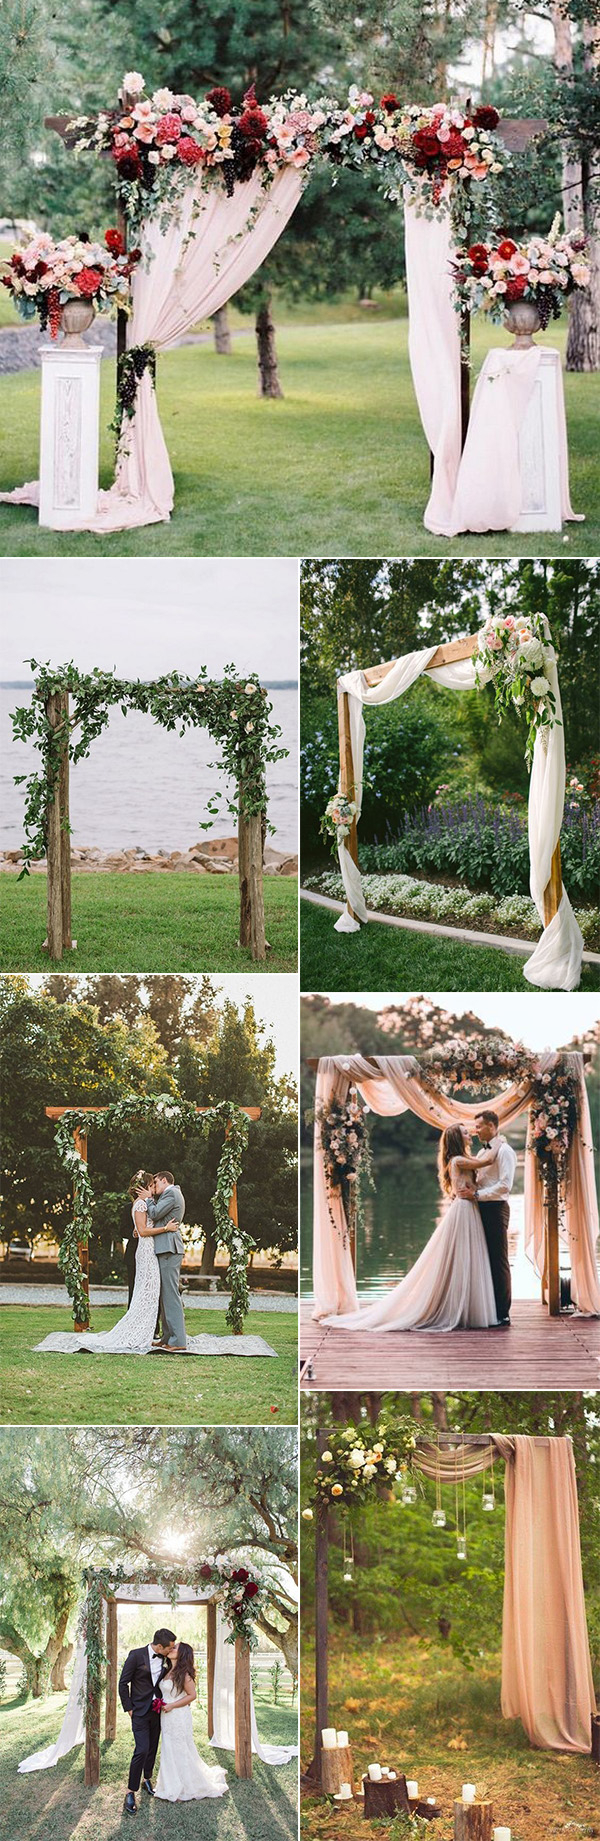 35 Brilliant Outdoor Wedding Decoration Ideas For 2018 Trends with regard to Small Backyard Wedding Ceremony Ideas